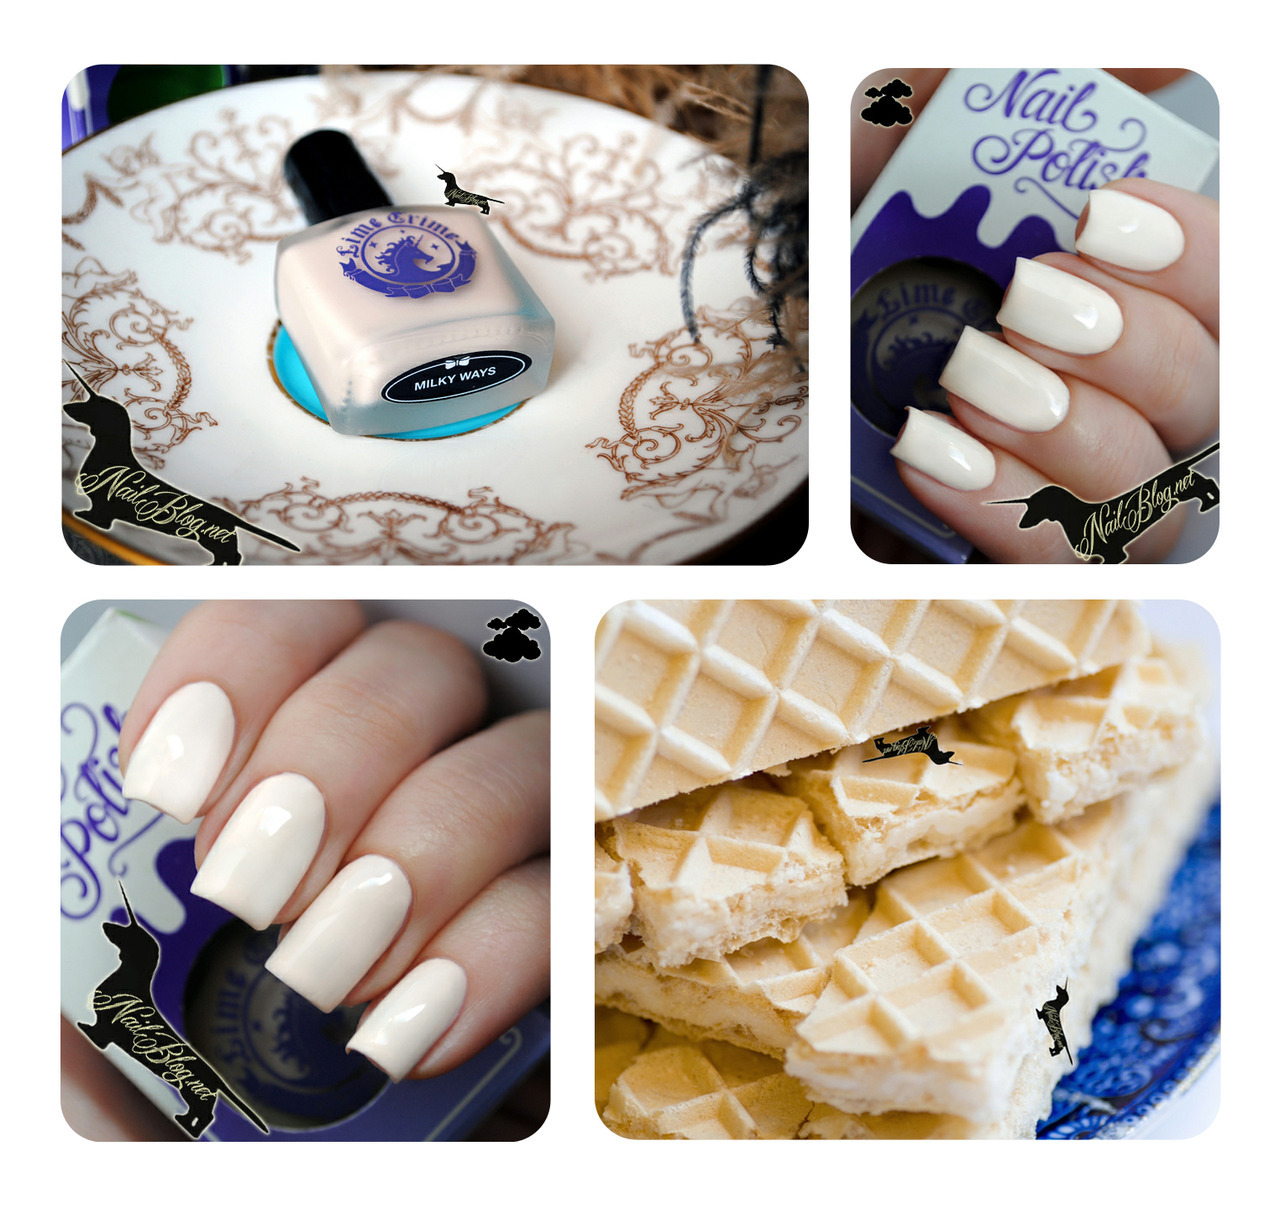 Wafery off-white nail polish by Lime Crime appropriately called Milky Ways. :)